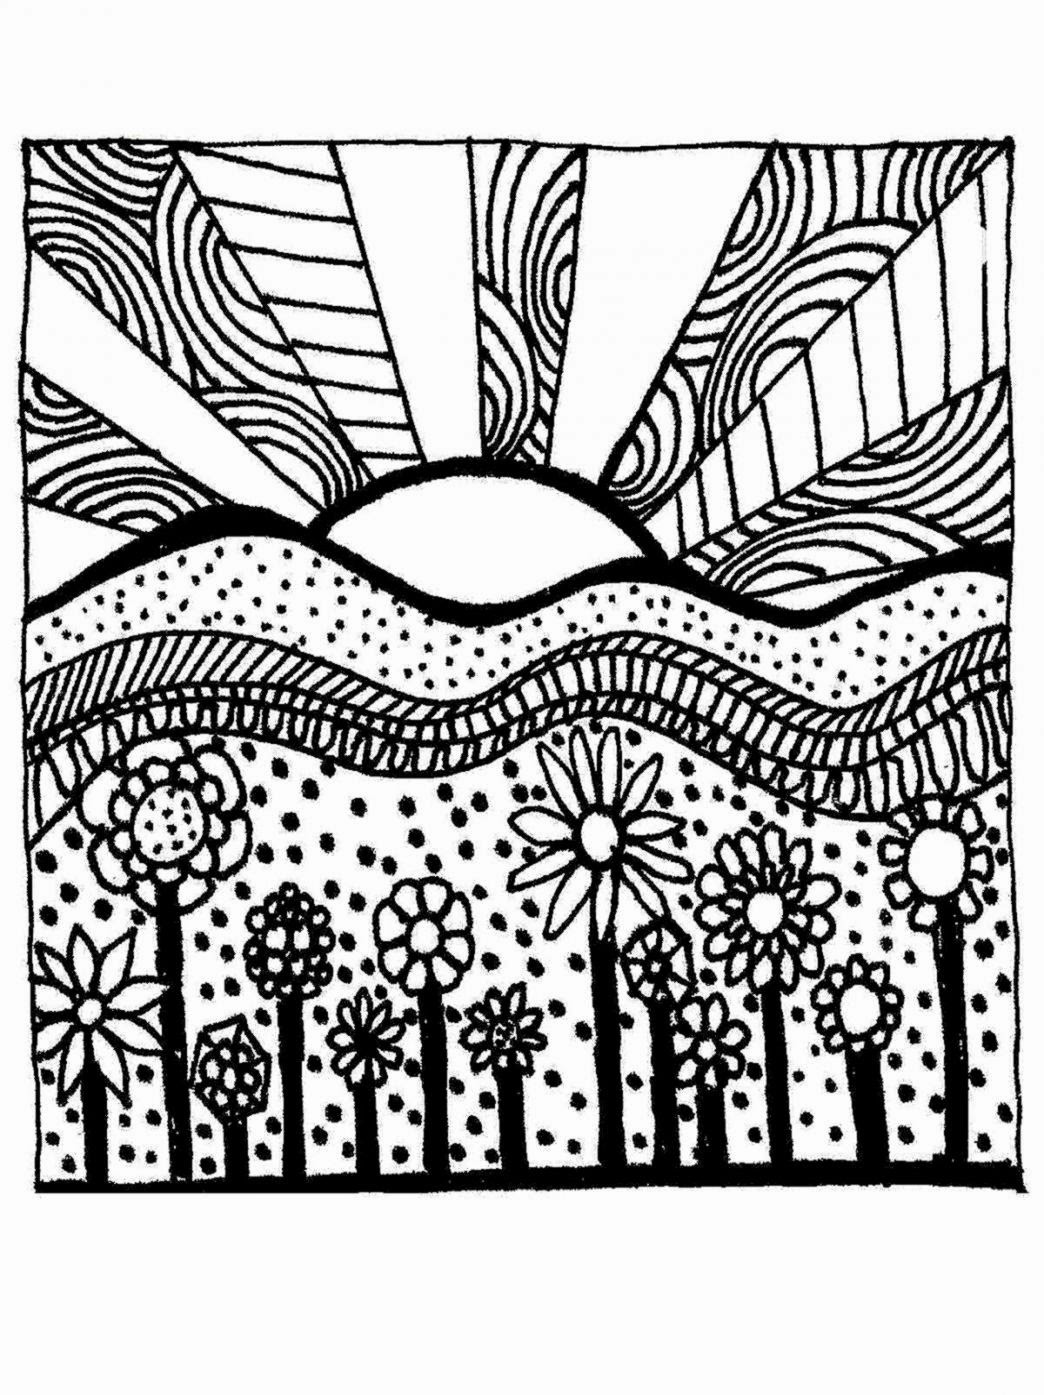 Free Printable Coloring Sheets Adults  Free Coloring Pages For Adults To Print Special Image 22